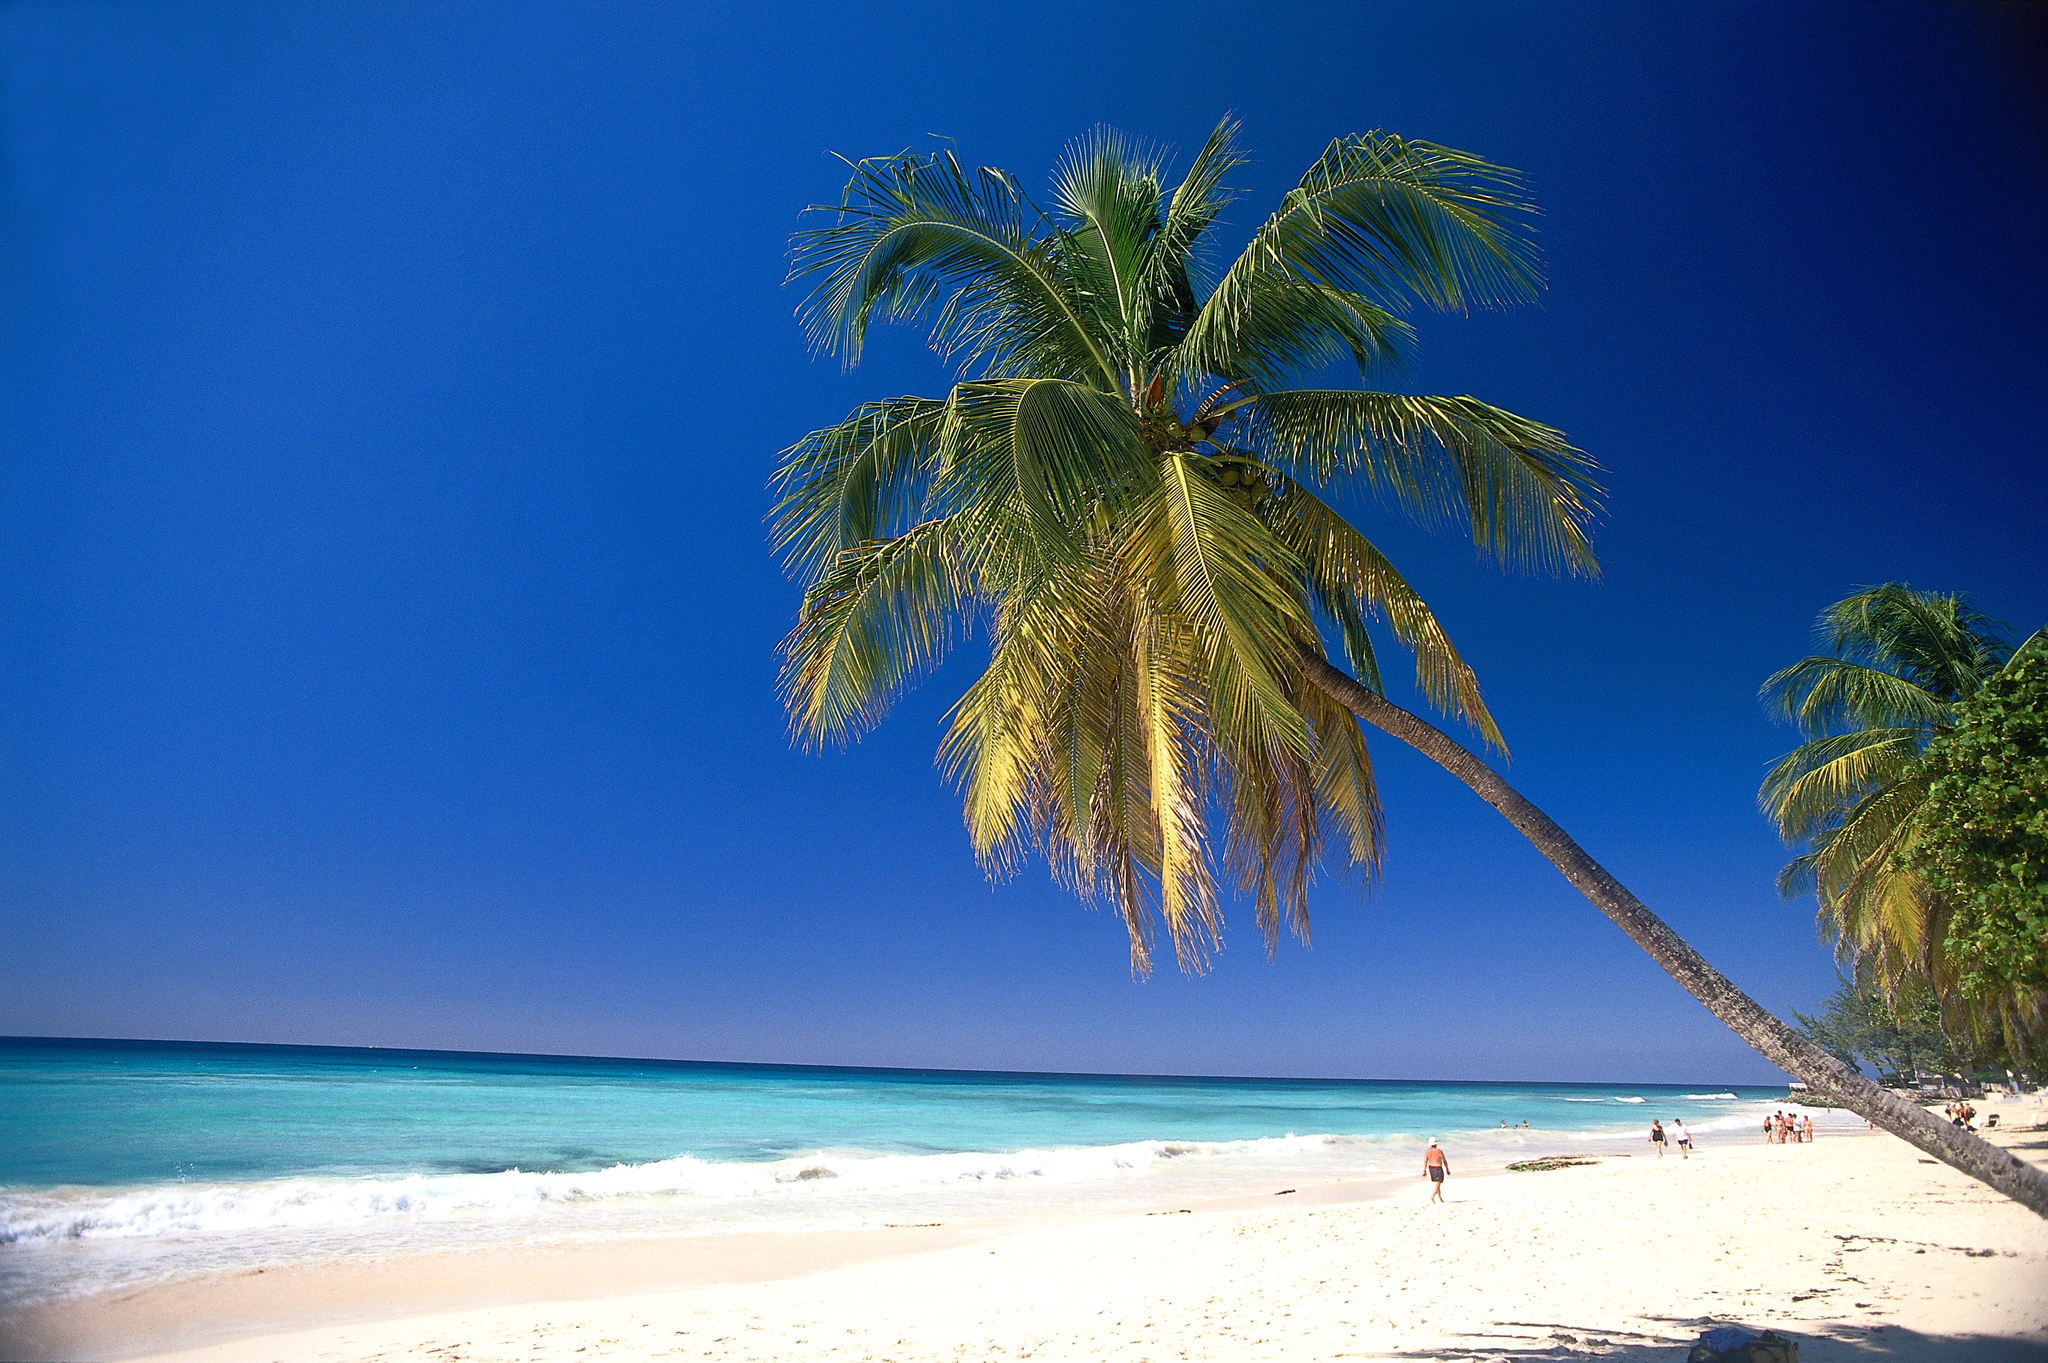 tourism in barbados 2017-4-3 barbados: july 2002  particularly tourism and financial services  barbados is currently engaged in trade negotiations in a number of international fora.